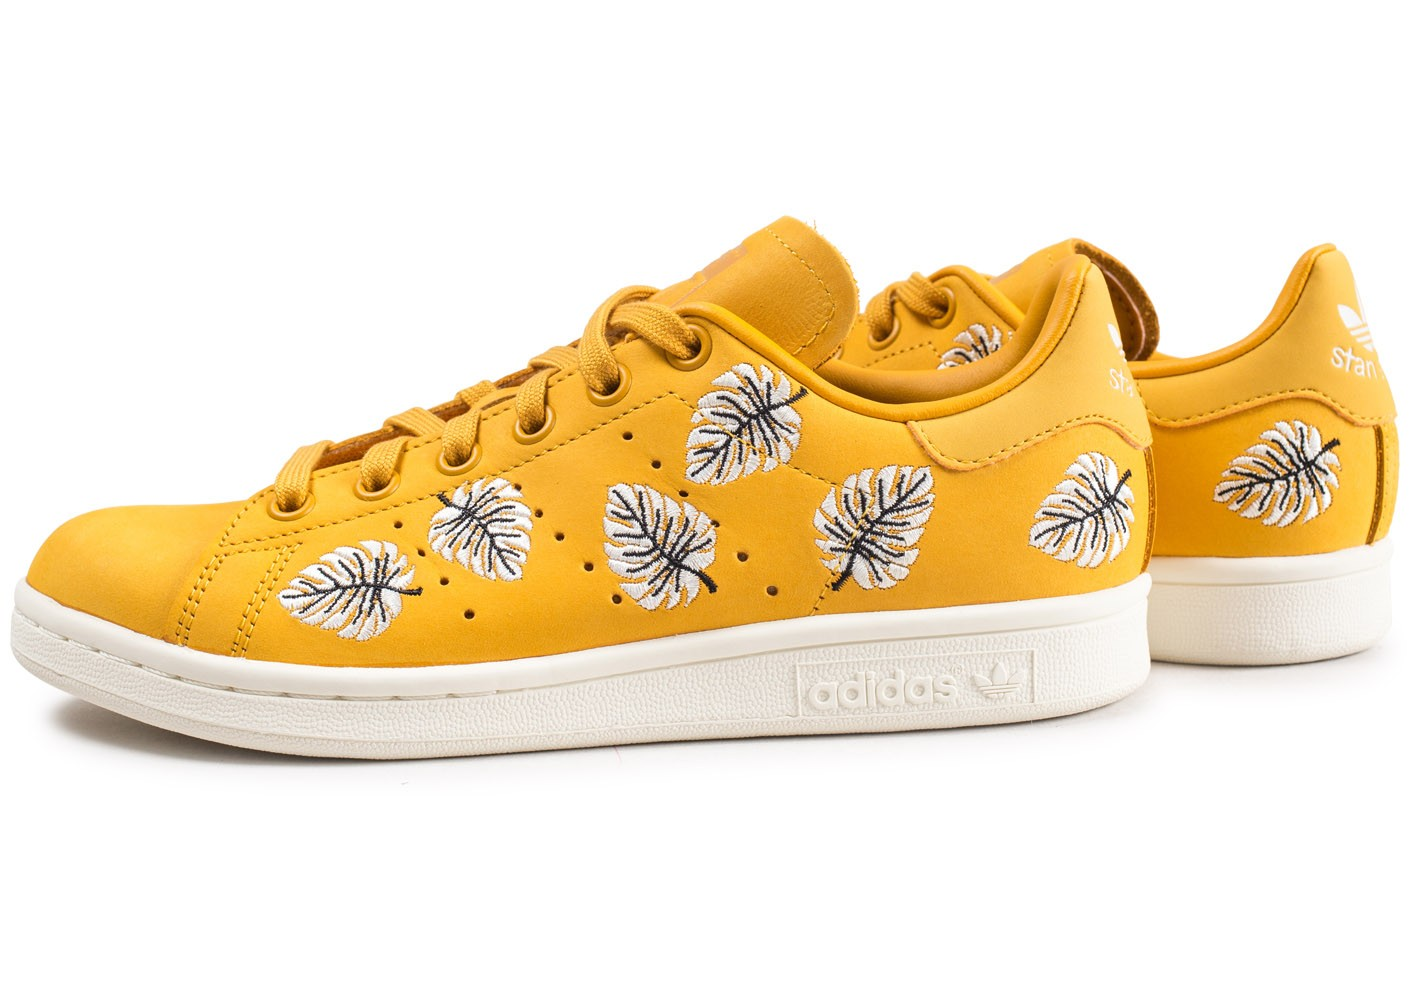 adidas Stan Smith The Farm Company jaune femme - Chaussures ...